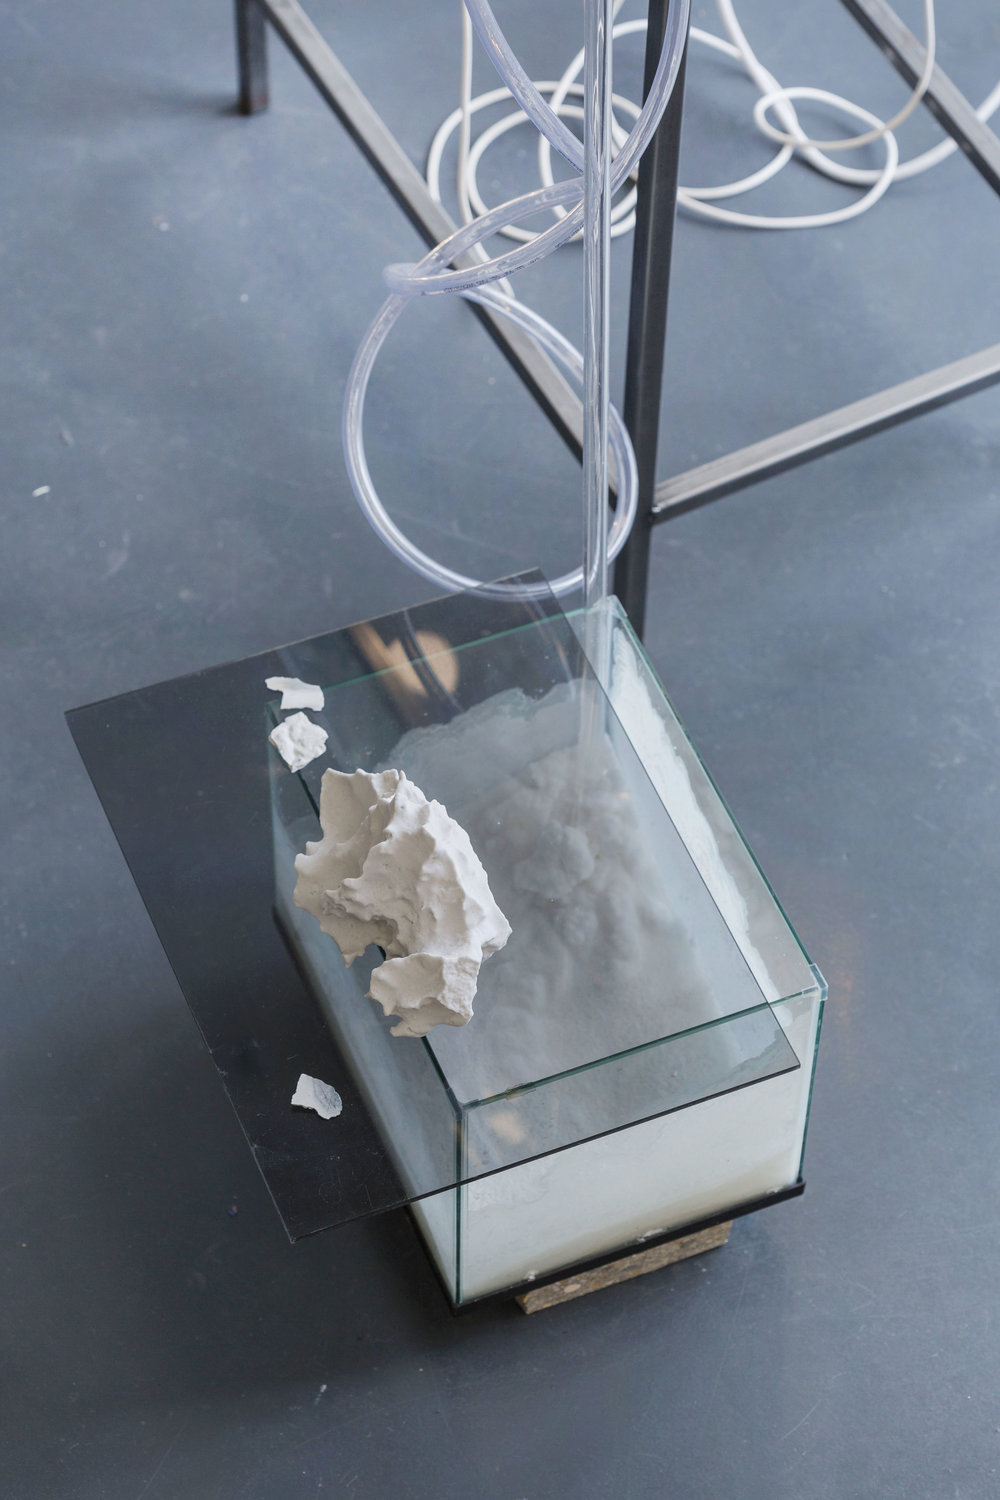 3D printed plaster powder salt rocks : Hannah Rowan,  Melting Transmission  (detail), 2018, image by Oskar Proctor.